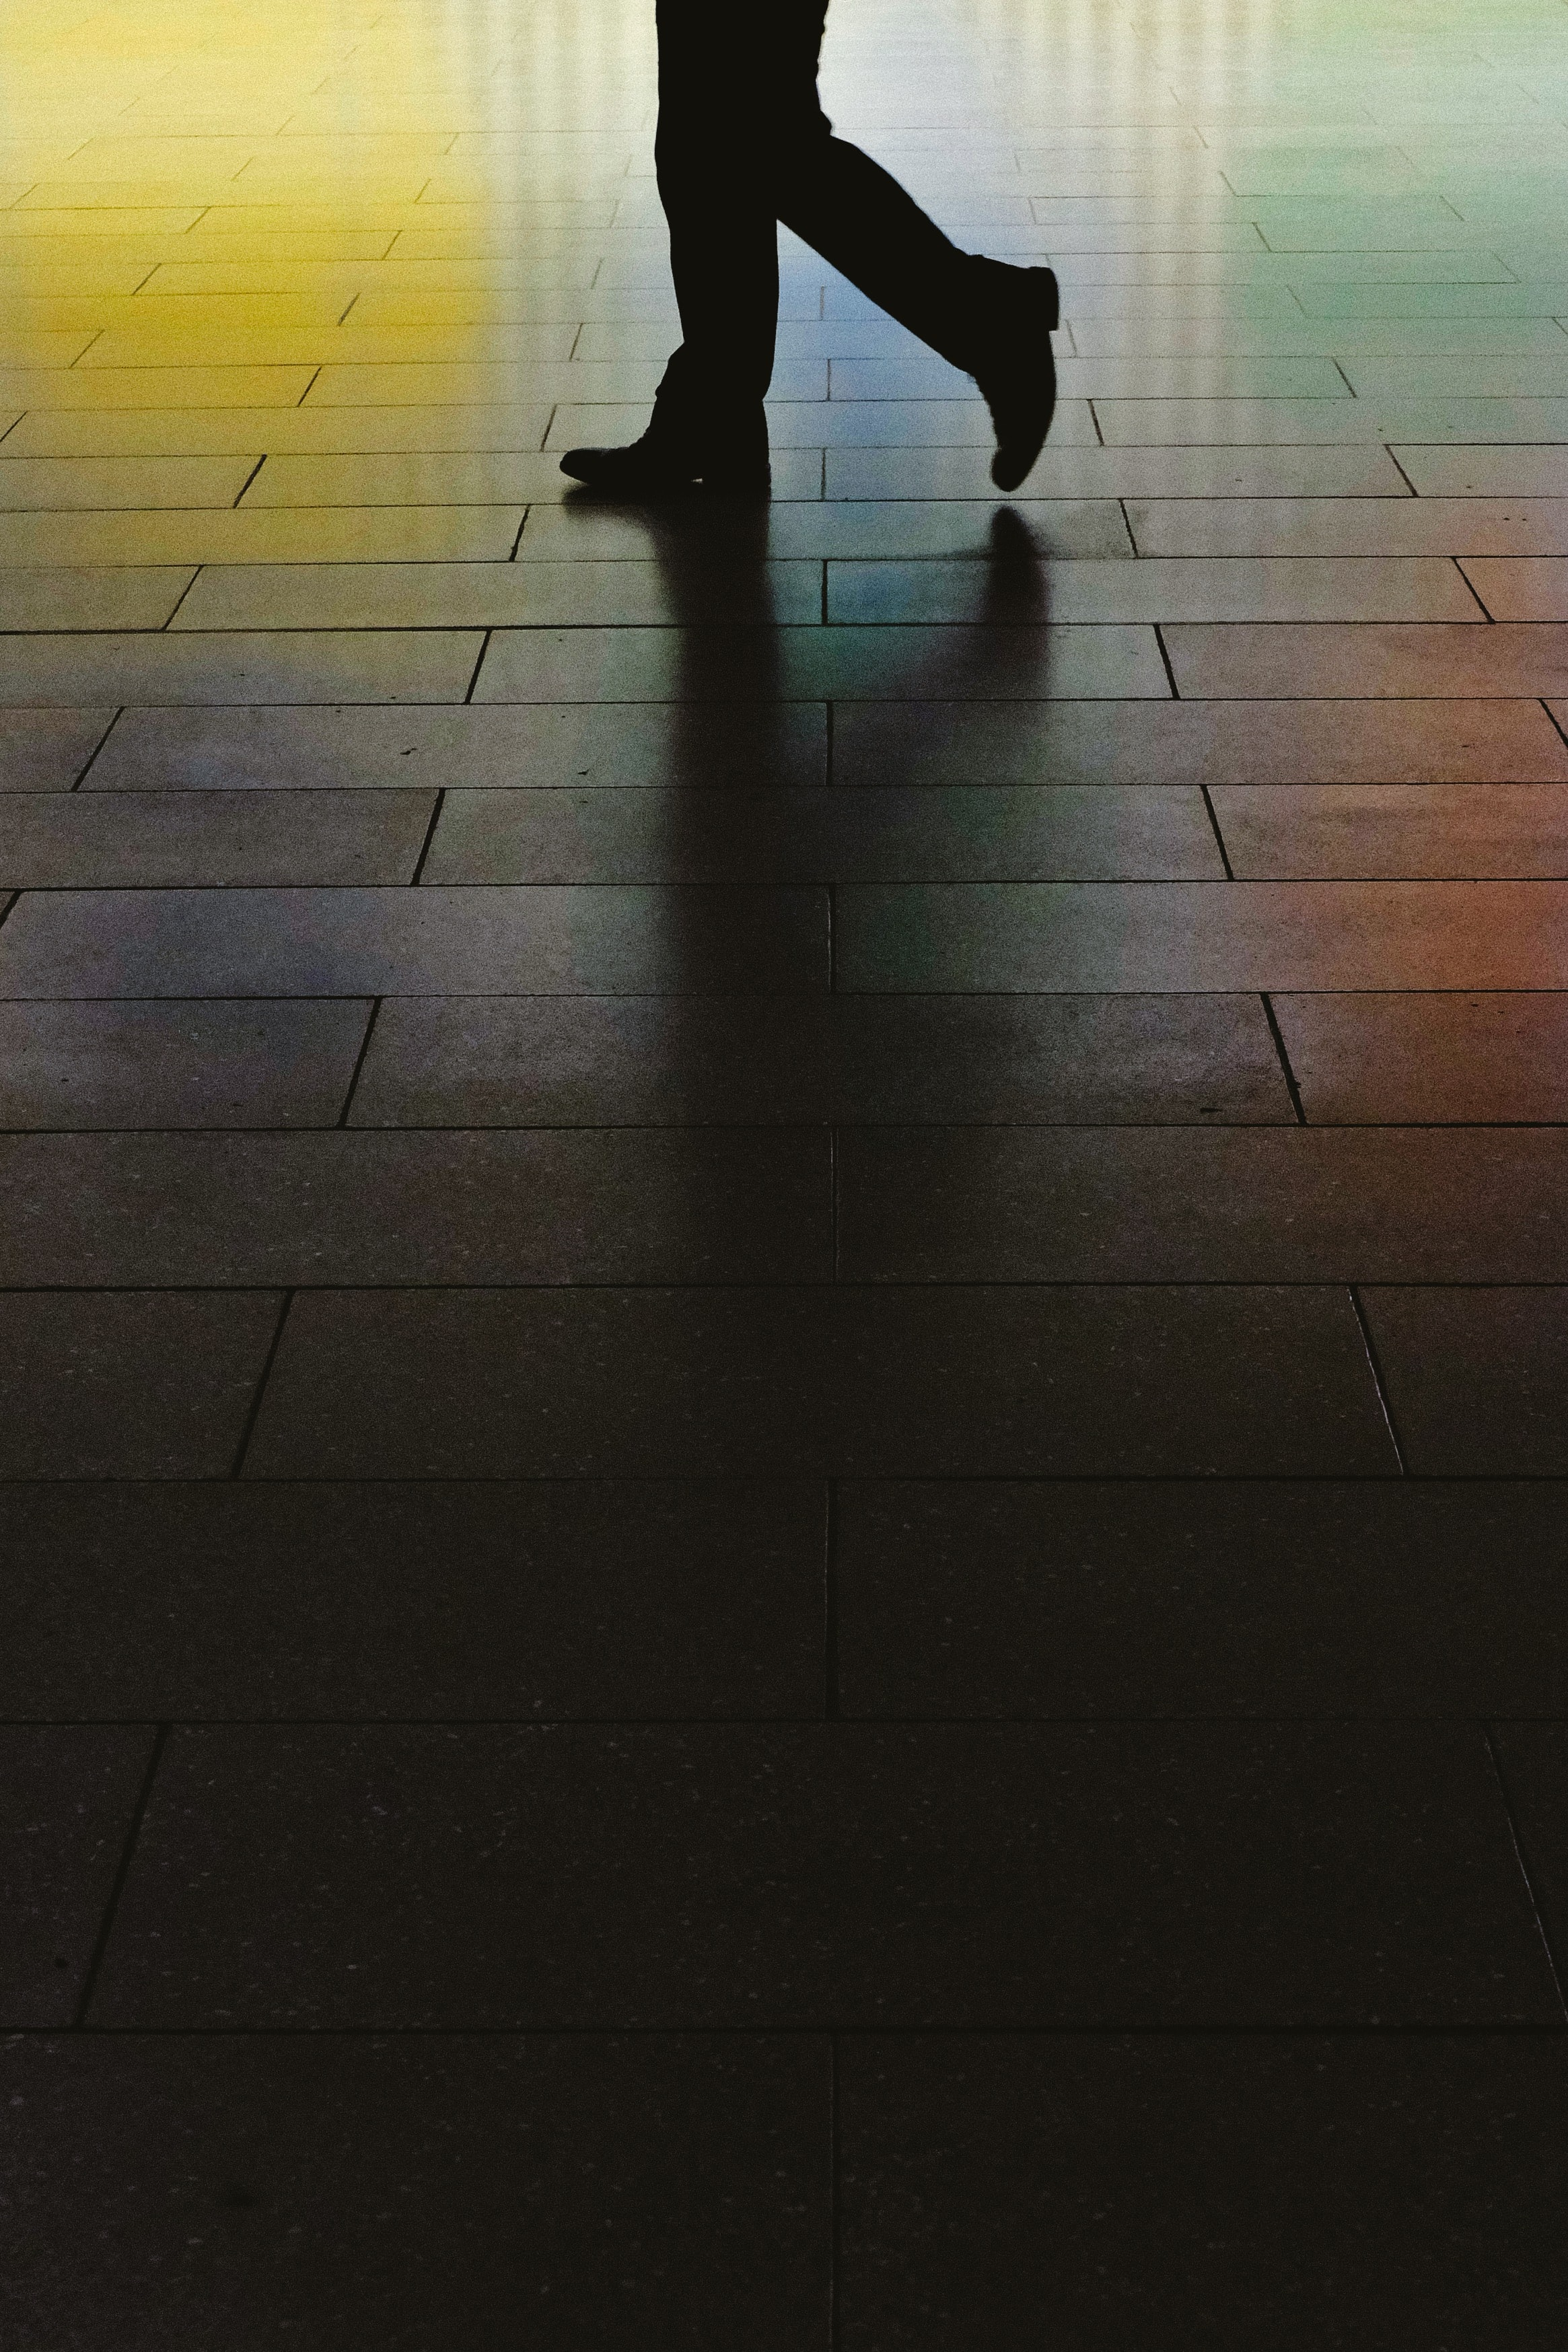 A low shot of a person's legs on a glossy sidewalk